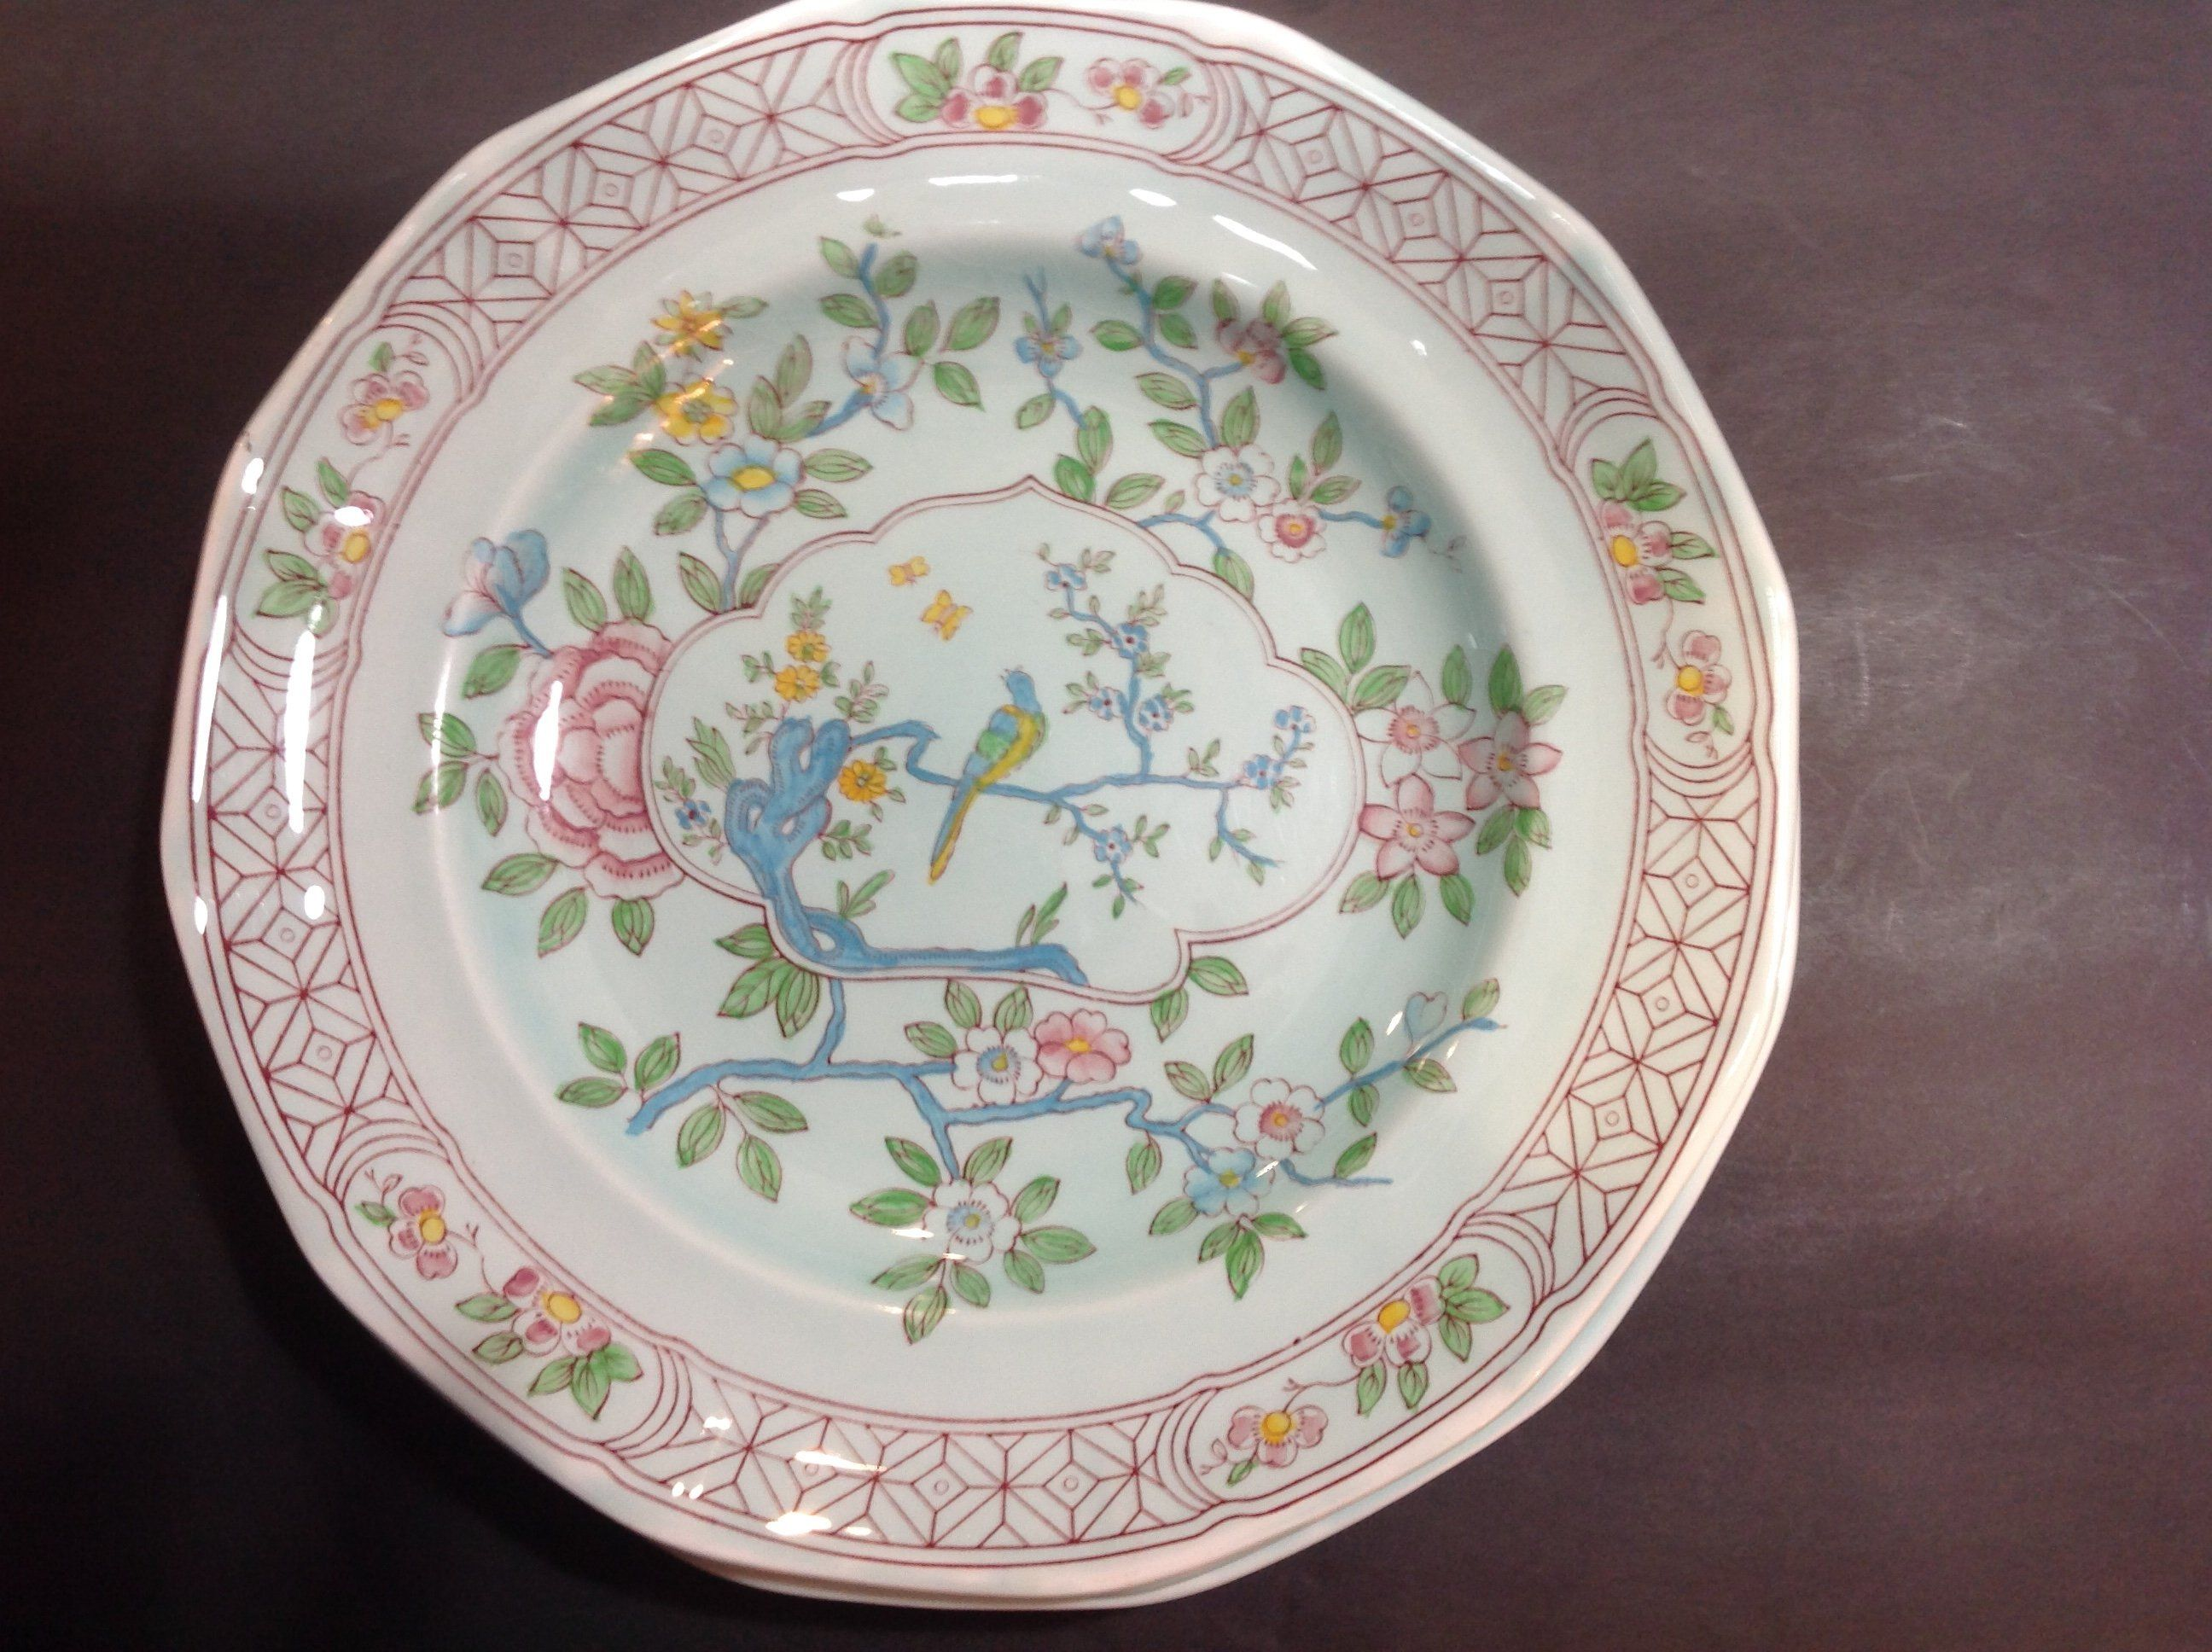 Adams Calyx Ware 10 Dinner Plate Singapore Bird Made In England By Soigneeyou On Etsy Dinner Plates Plates 10 Things